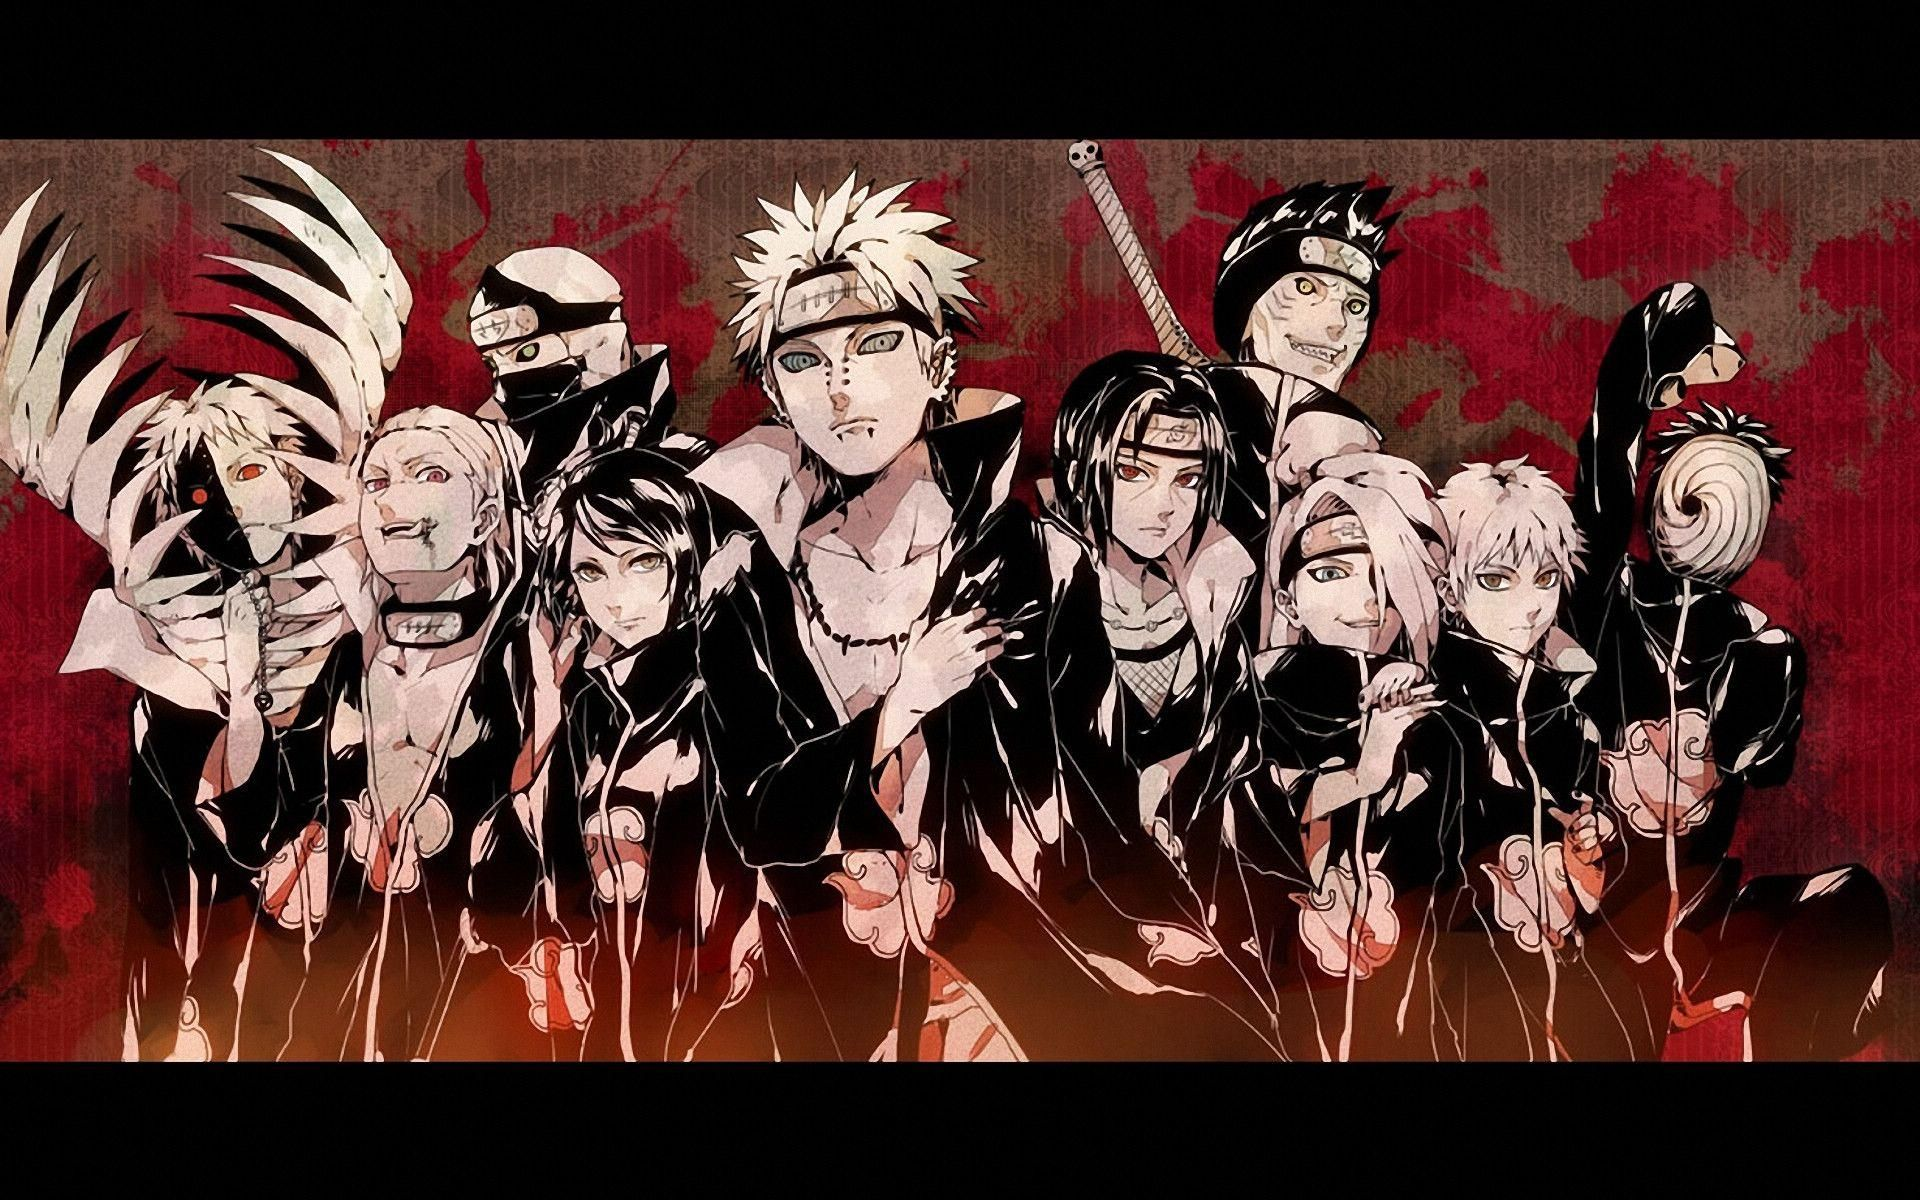 Naruto Hd Wallpapers For Windows 10 Naruto Akatsuki Wallpapers Hd Wallpaper Cave Download Wallpaper 1366 Wallpaper Naruto Shippuden Naruto Wallpaper Akatsuki